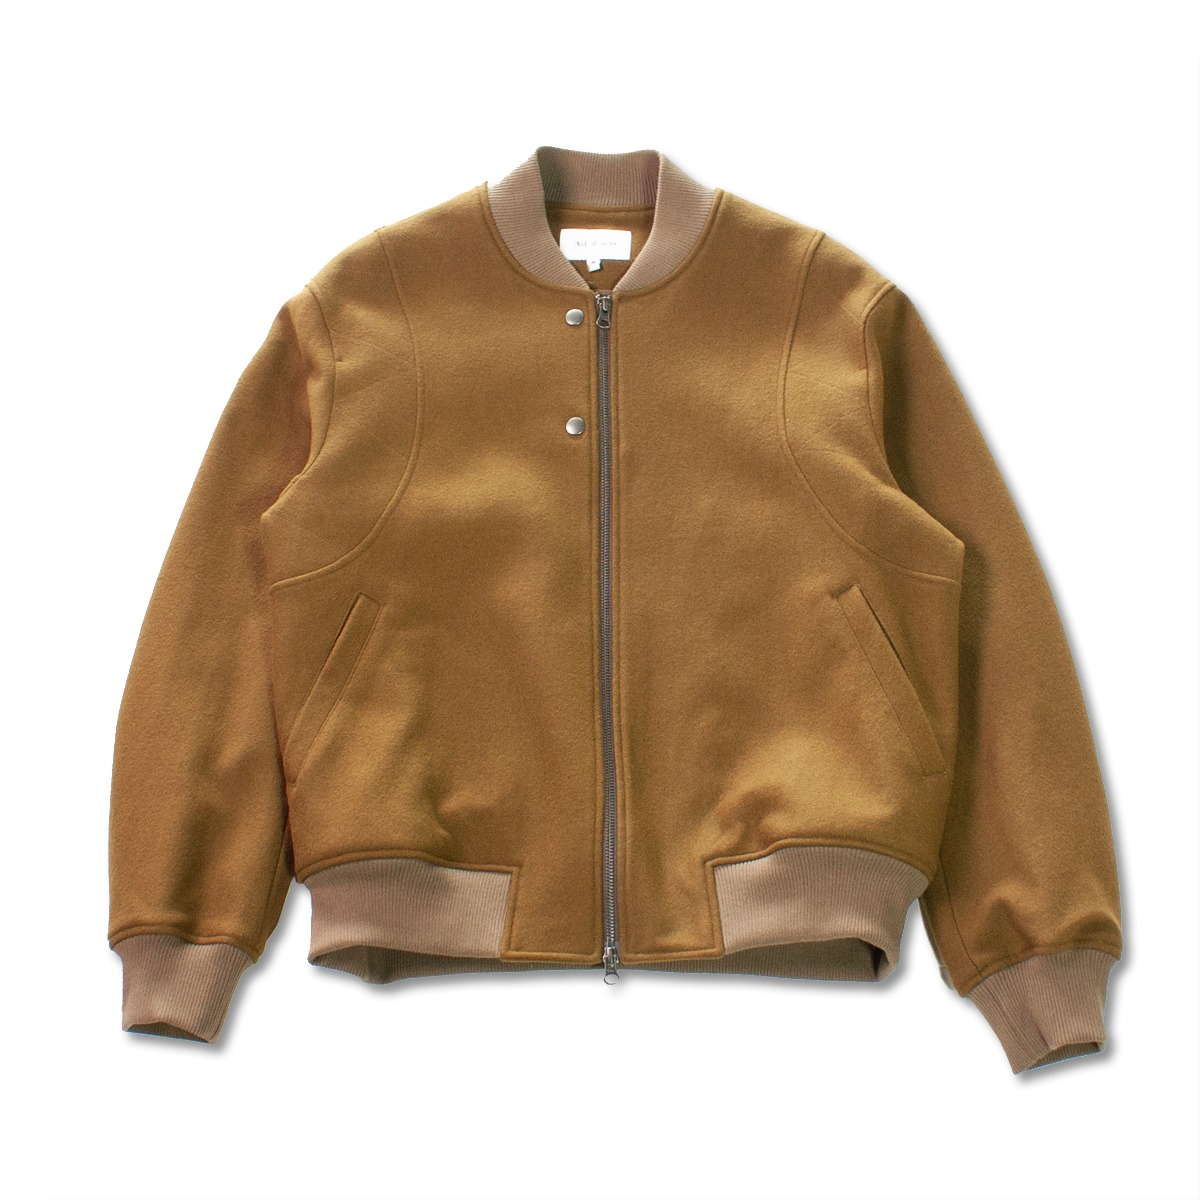 [ART IF ACTS] VARSITY JACKET 'OCHRE'